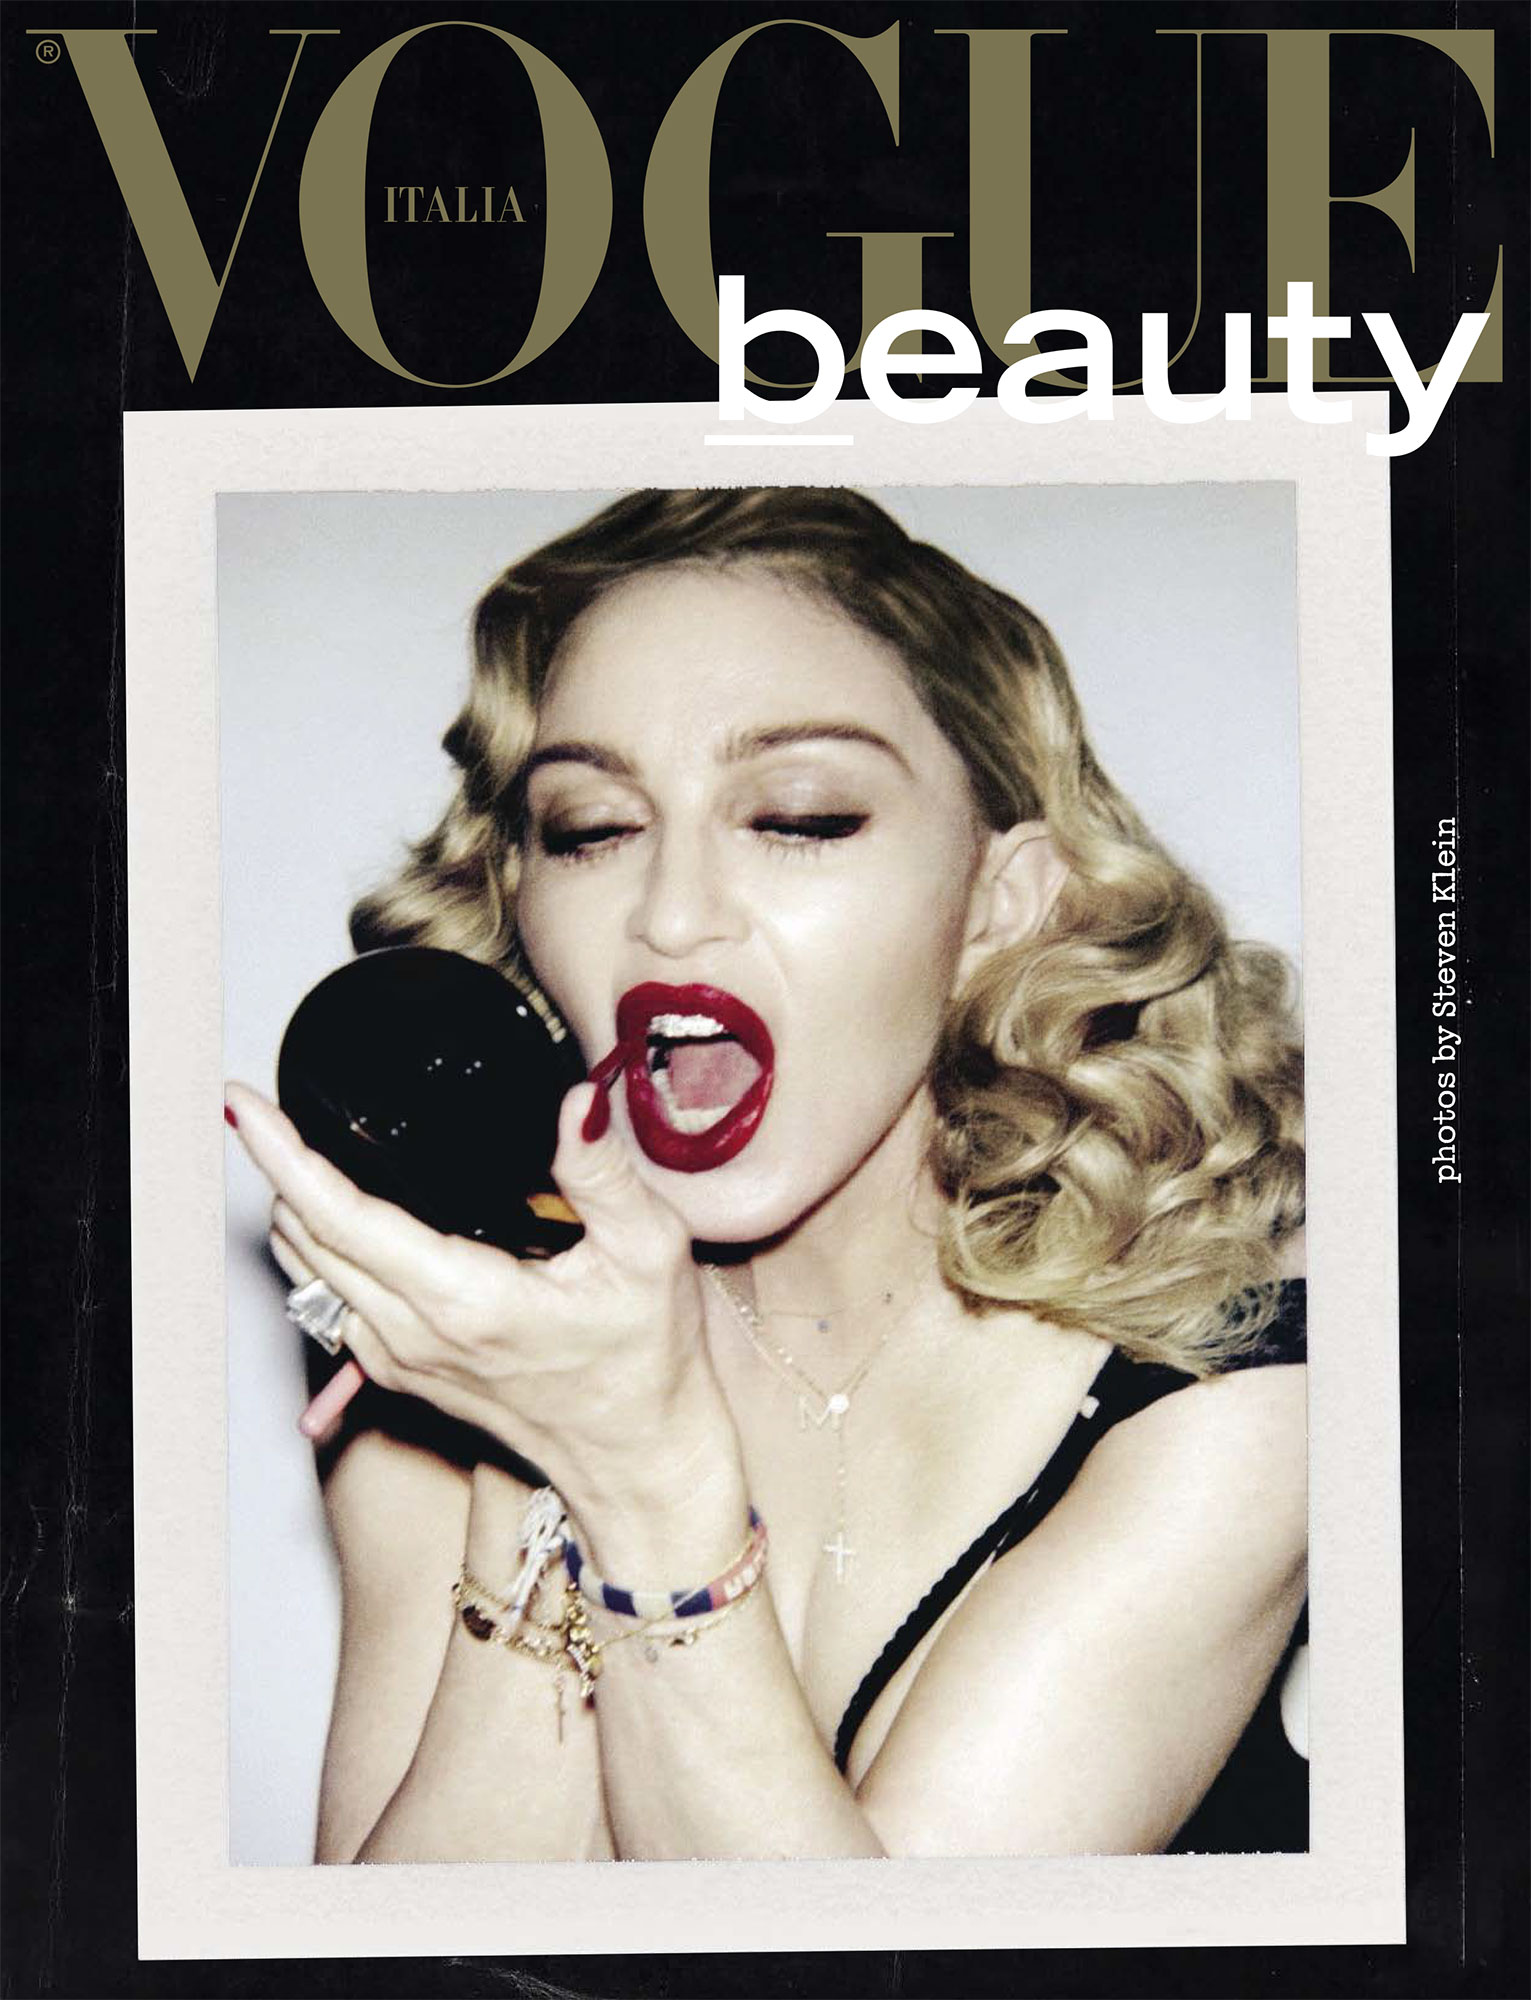 Madonna in the Let's Dance Black Onyx Necklace in Vogue Italia February 2017